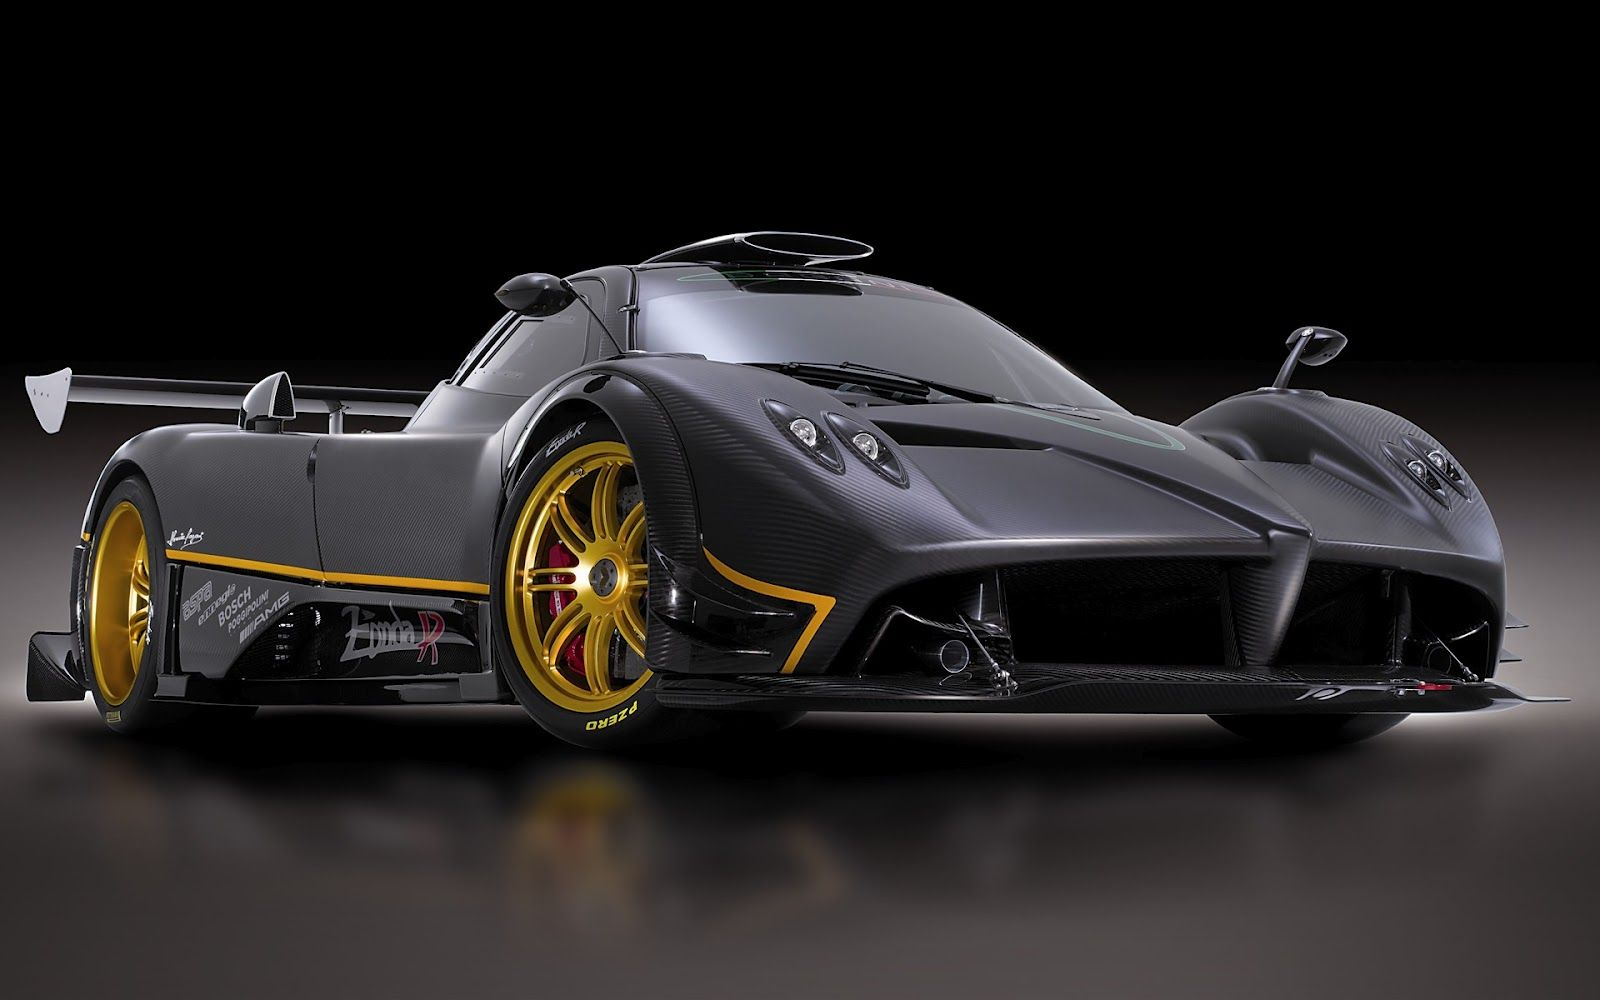 exotic sports cars | Cars Hd Wallpapers | Sports Cars | Pinterest ...